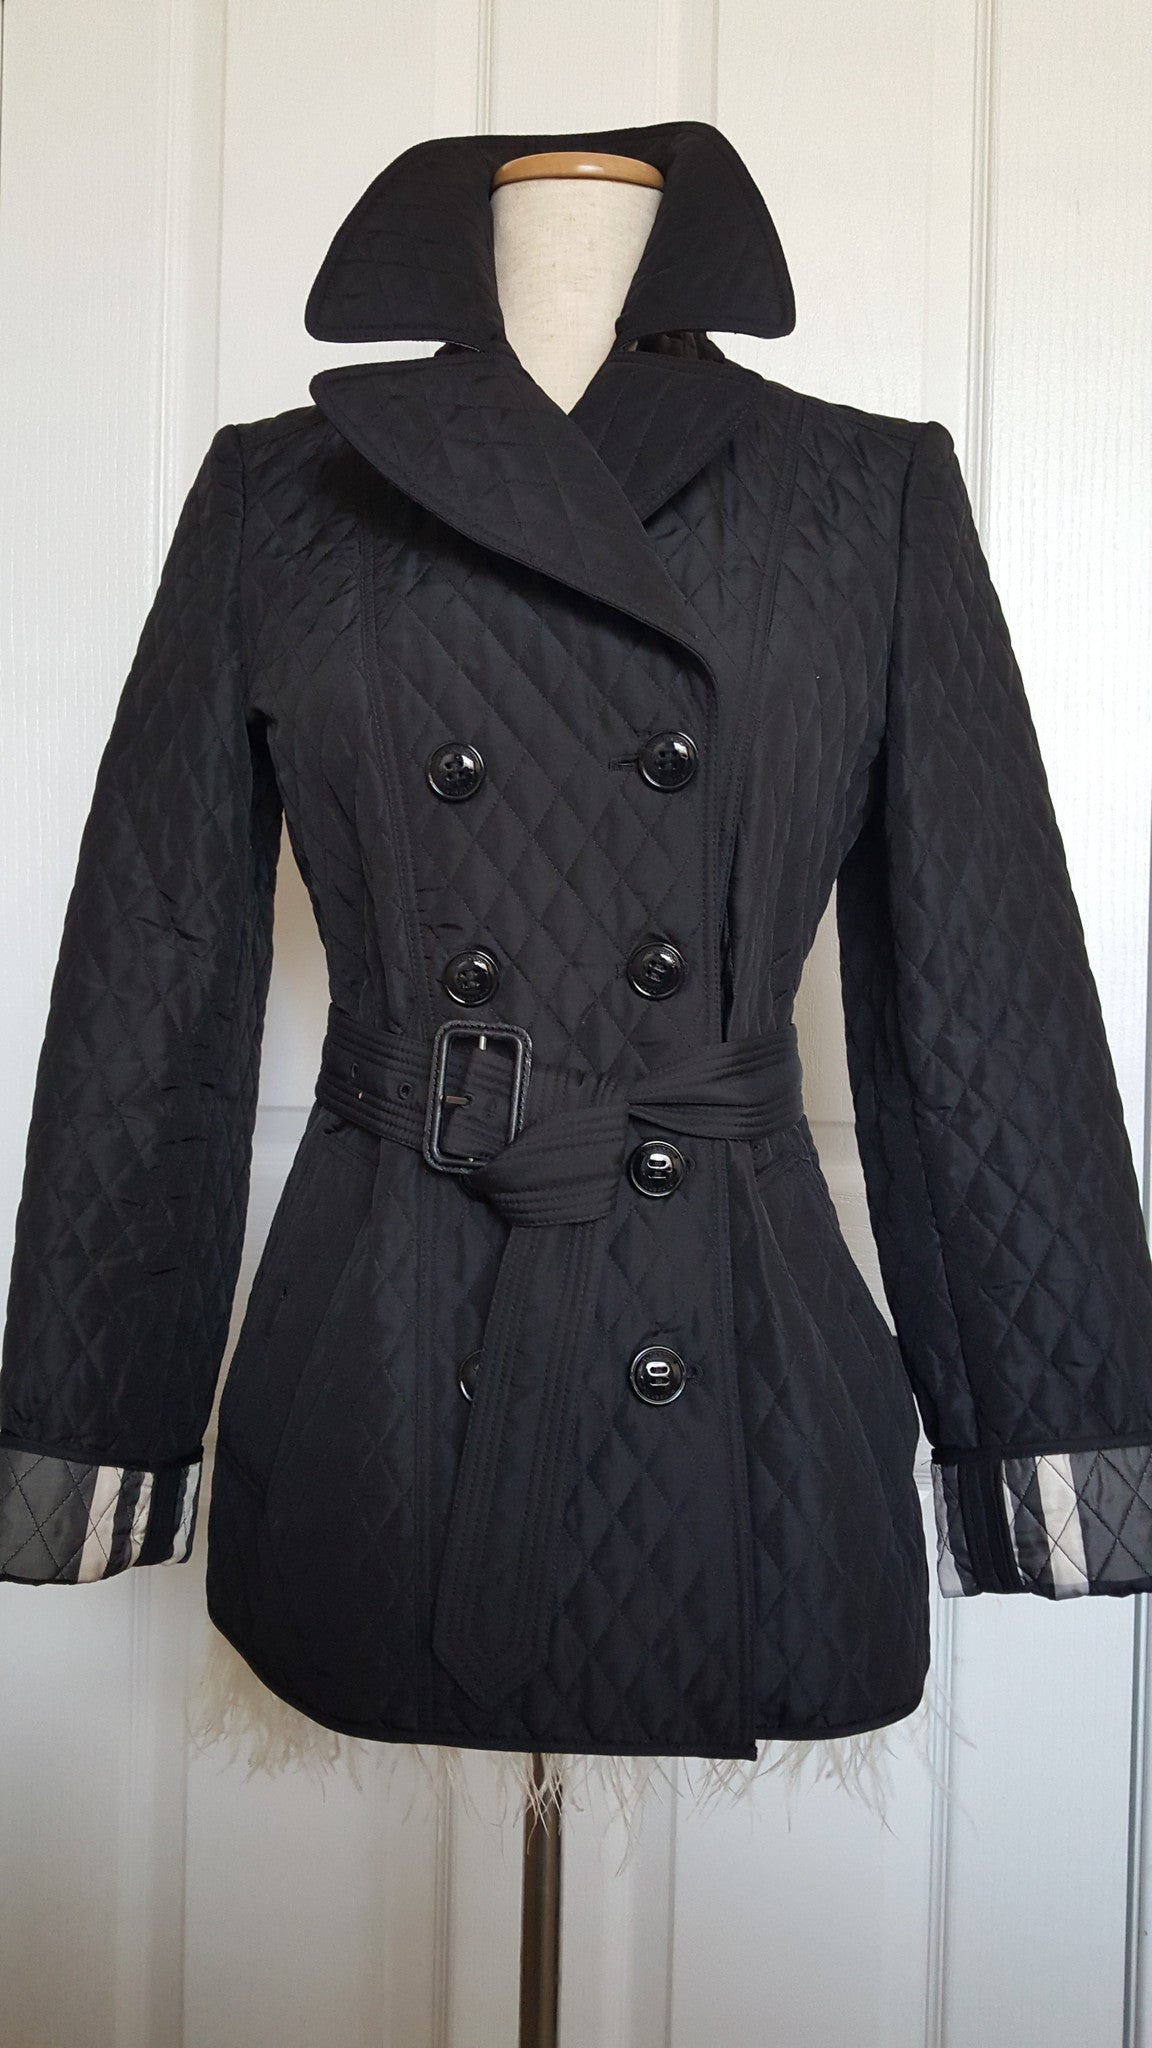 BURBERRY LONDON CHECK DETAIL DIAMOND QUILT JACKET - SIZE US 4